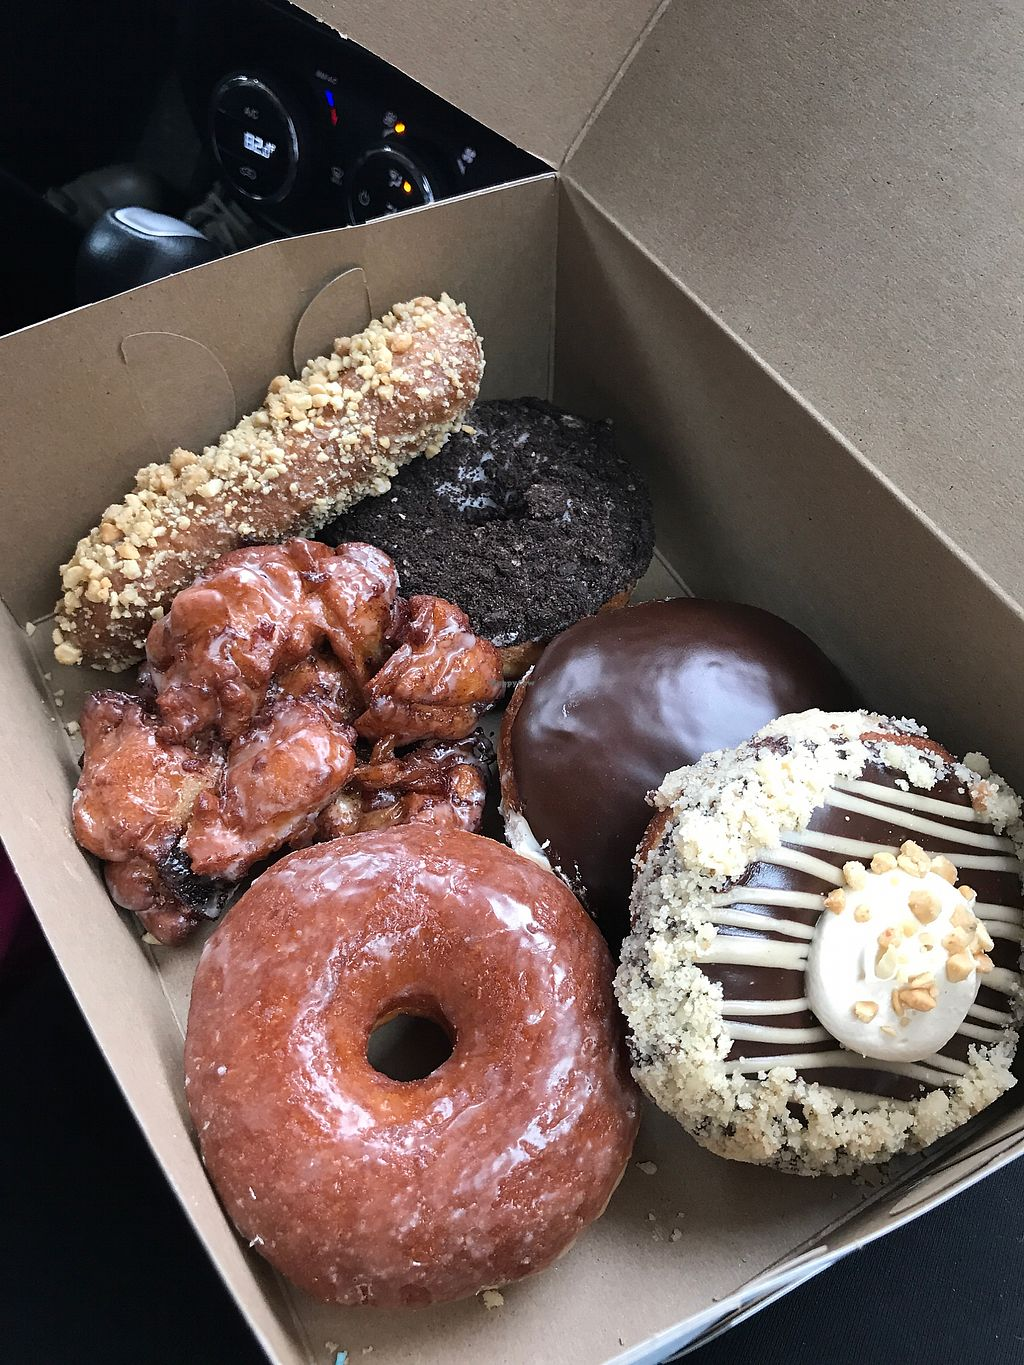 """Photo of Fry Baby Donuts  by <a href=""""/members/profile/Christ1na3"""">Christ1na3</a> <br/>Heaven ✨ <br/> April 14, 2018  - <a href='/contact/abuse/image/94269/385734'>Report</a>"""